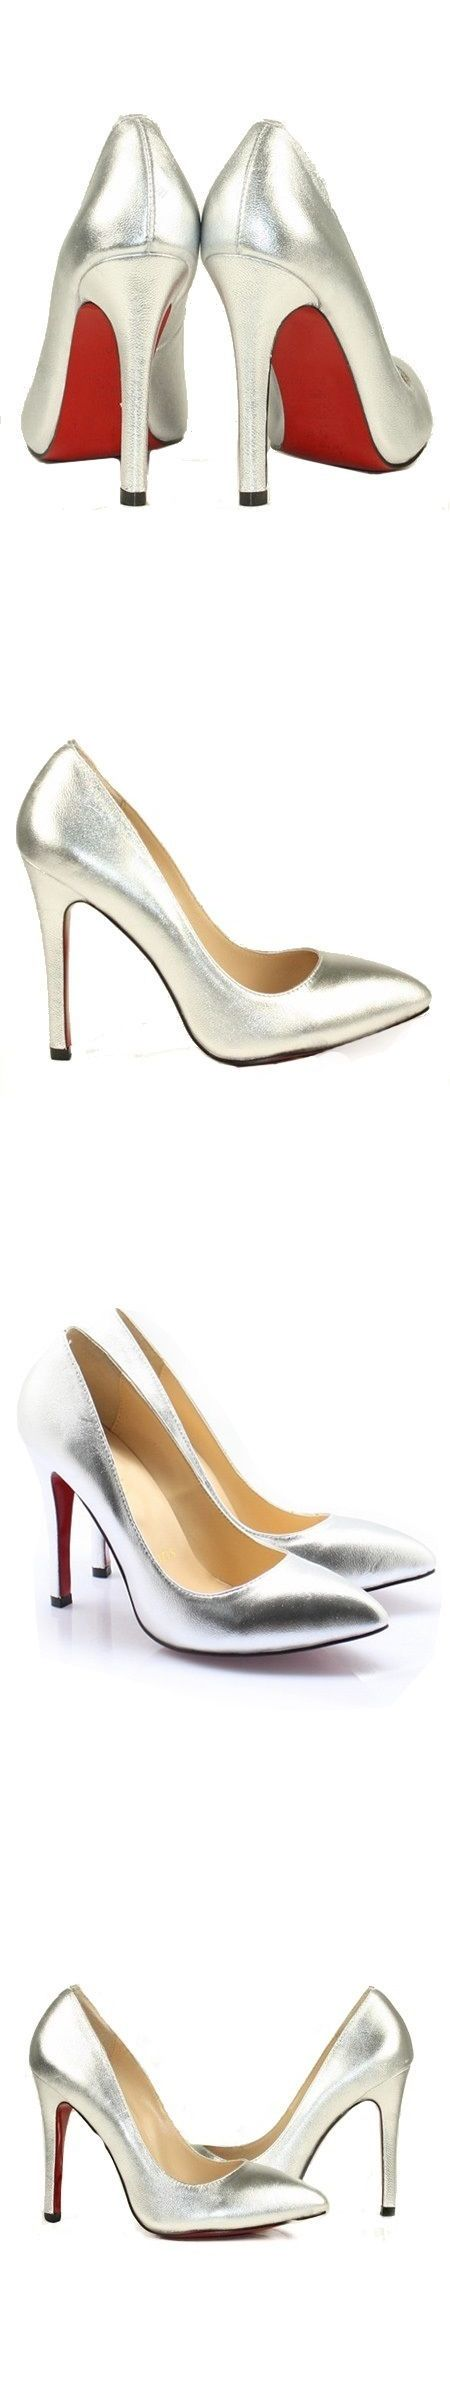 Wedding Shoes And Bridal Shoes: Stilettos Pumps Womens High Heels Silver Pointed Toe Dress Ladies Shoes Size 7 BUY IT NOW ONLY: $34.95